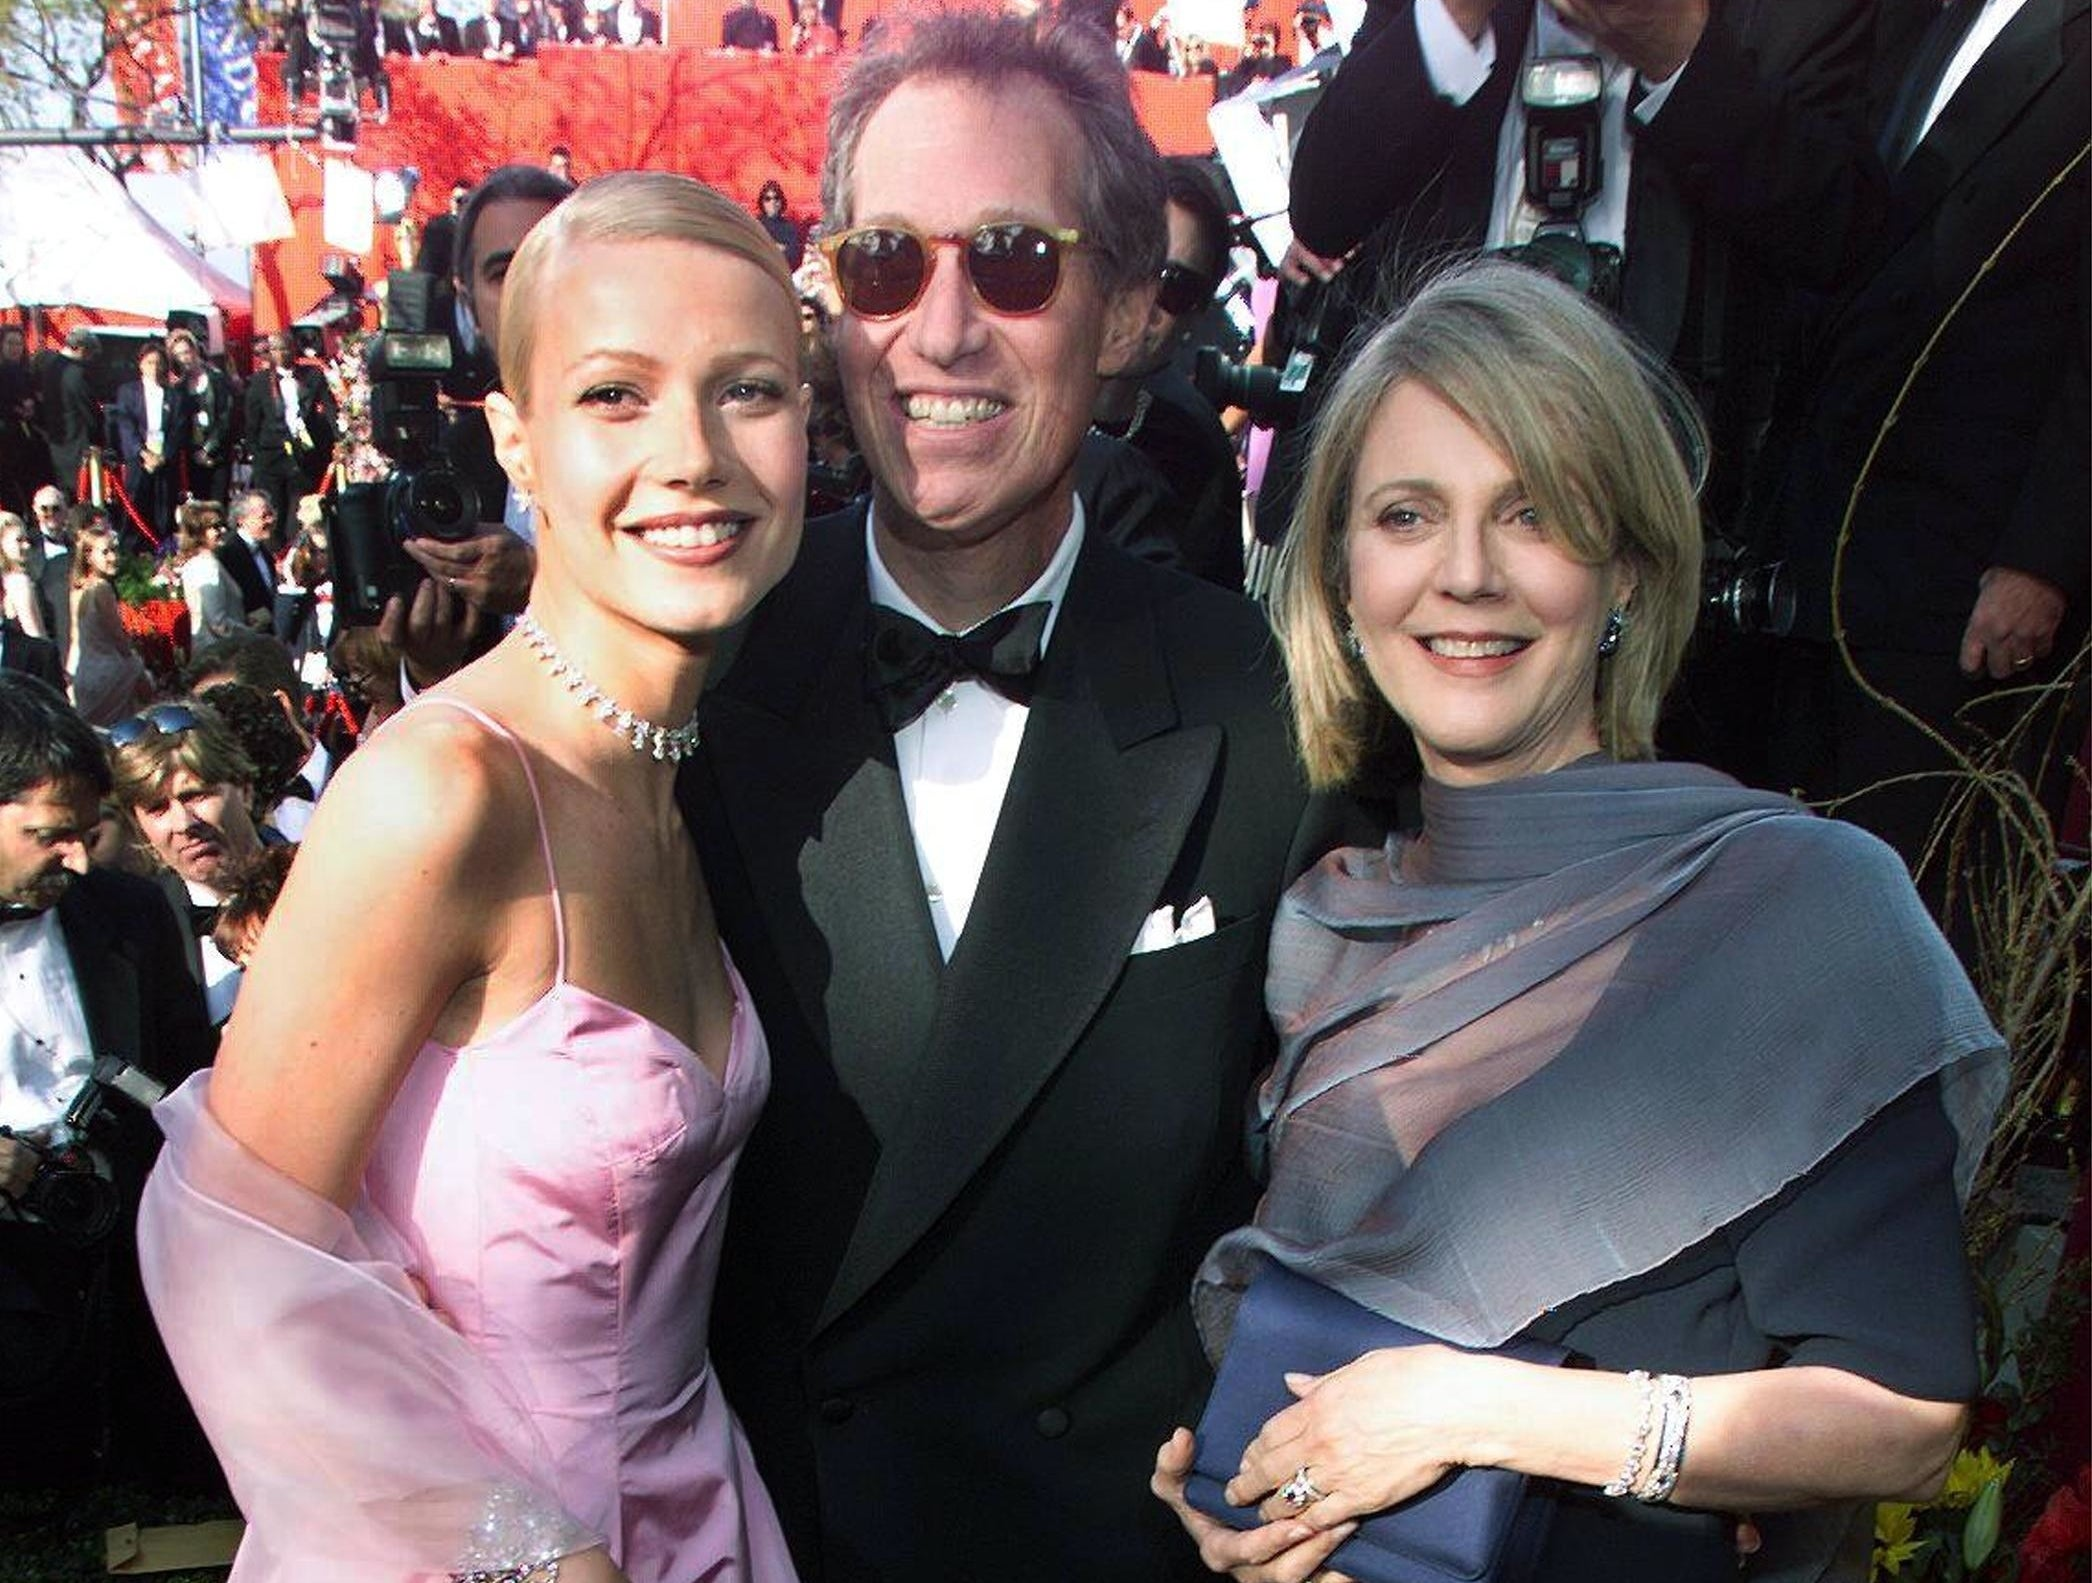 Gwyneth poses with her parents at the Oscars